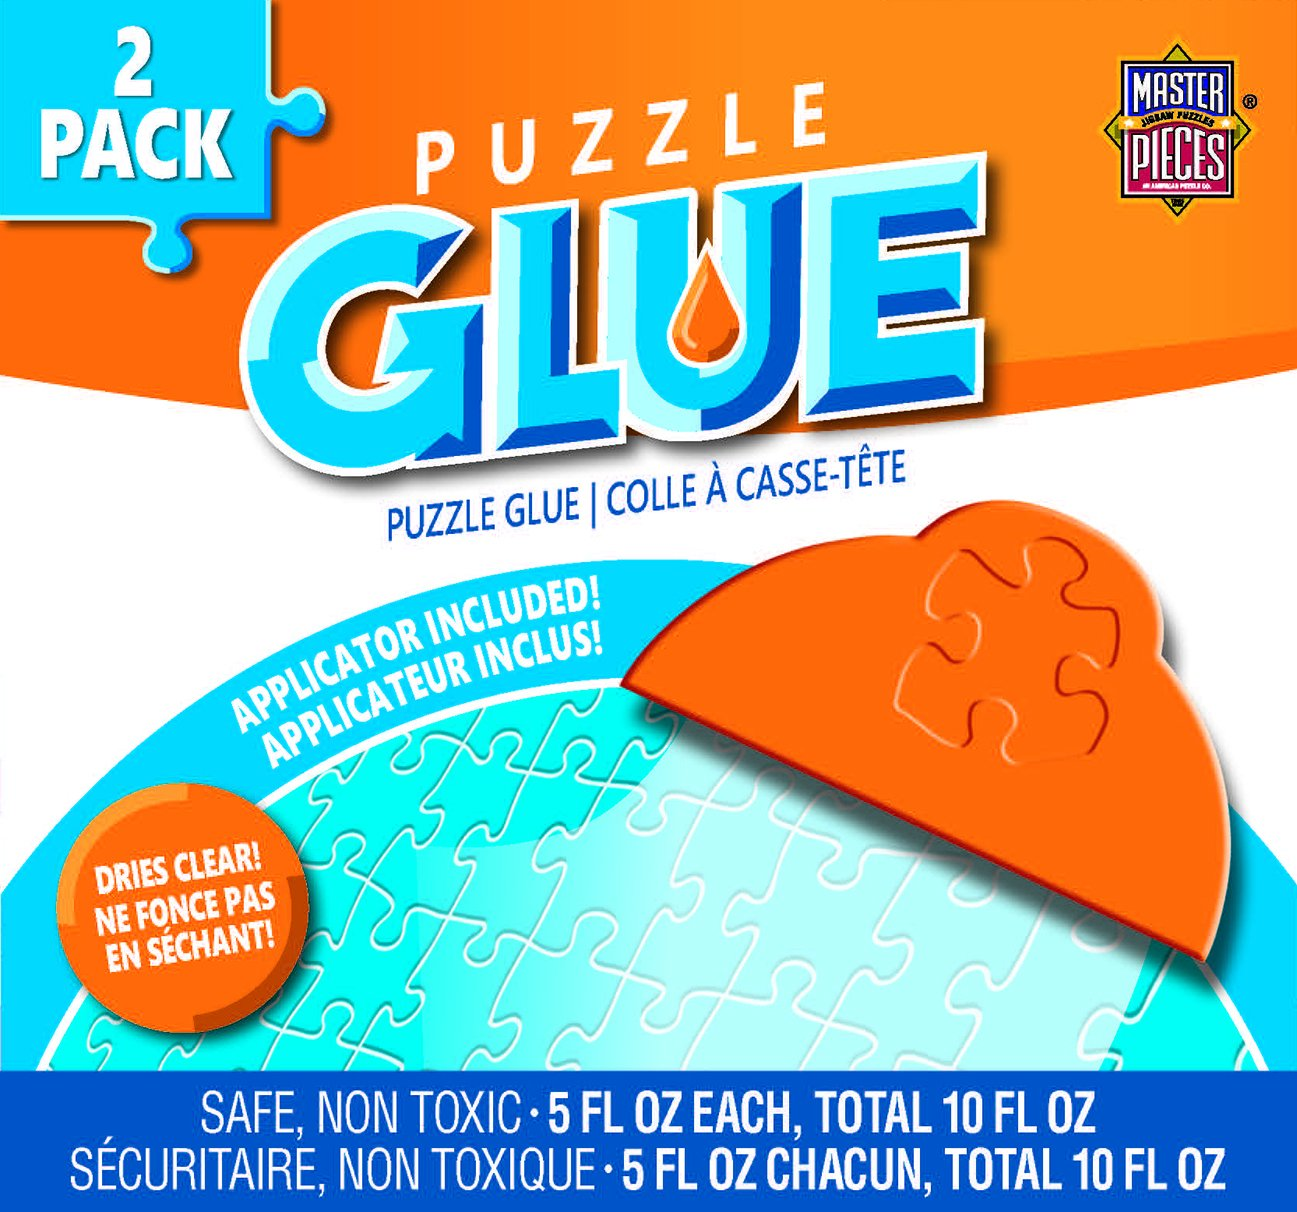 MasterPieces Accessories, Jigsaw Puzzle Glue Bottle & Wide Plastic Spreader, 5 Ounces each, 2 Pack by MasterPieces